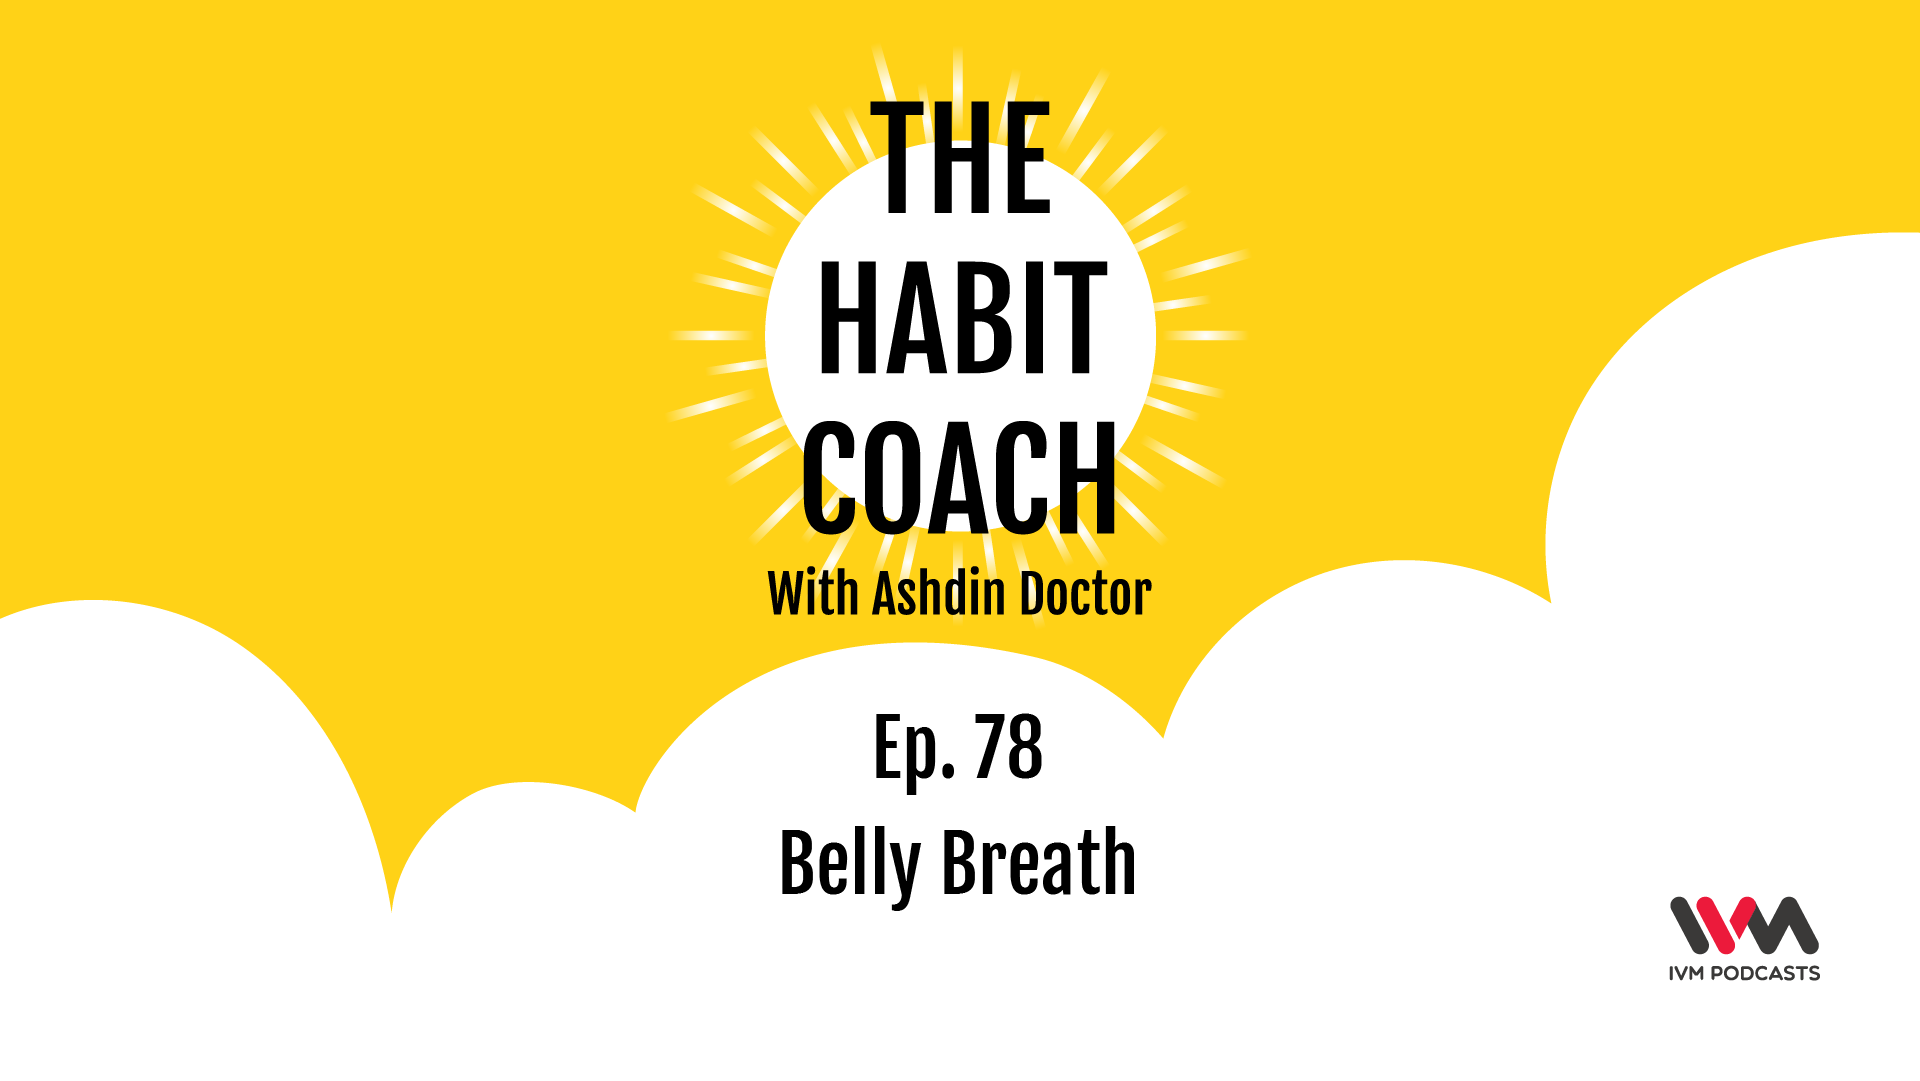 TheHabitCoachEpisode78.png